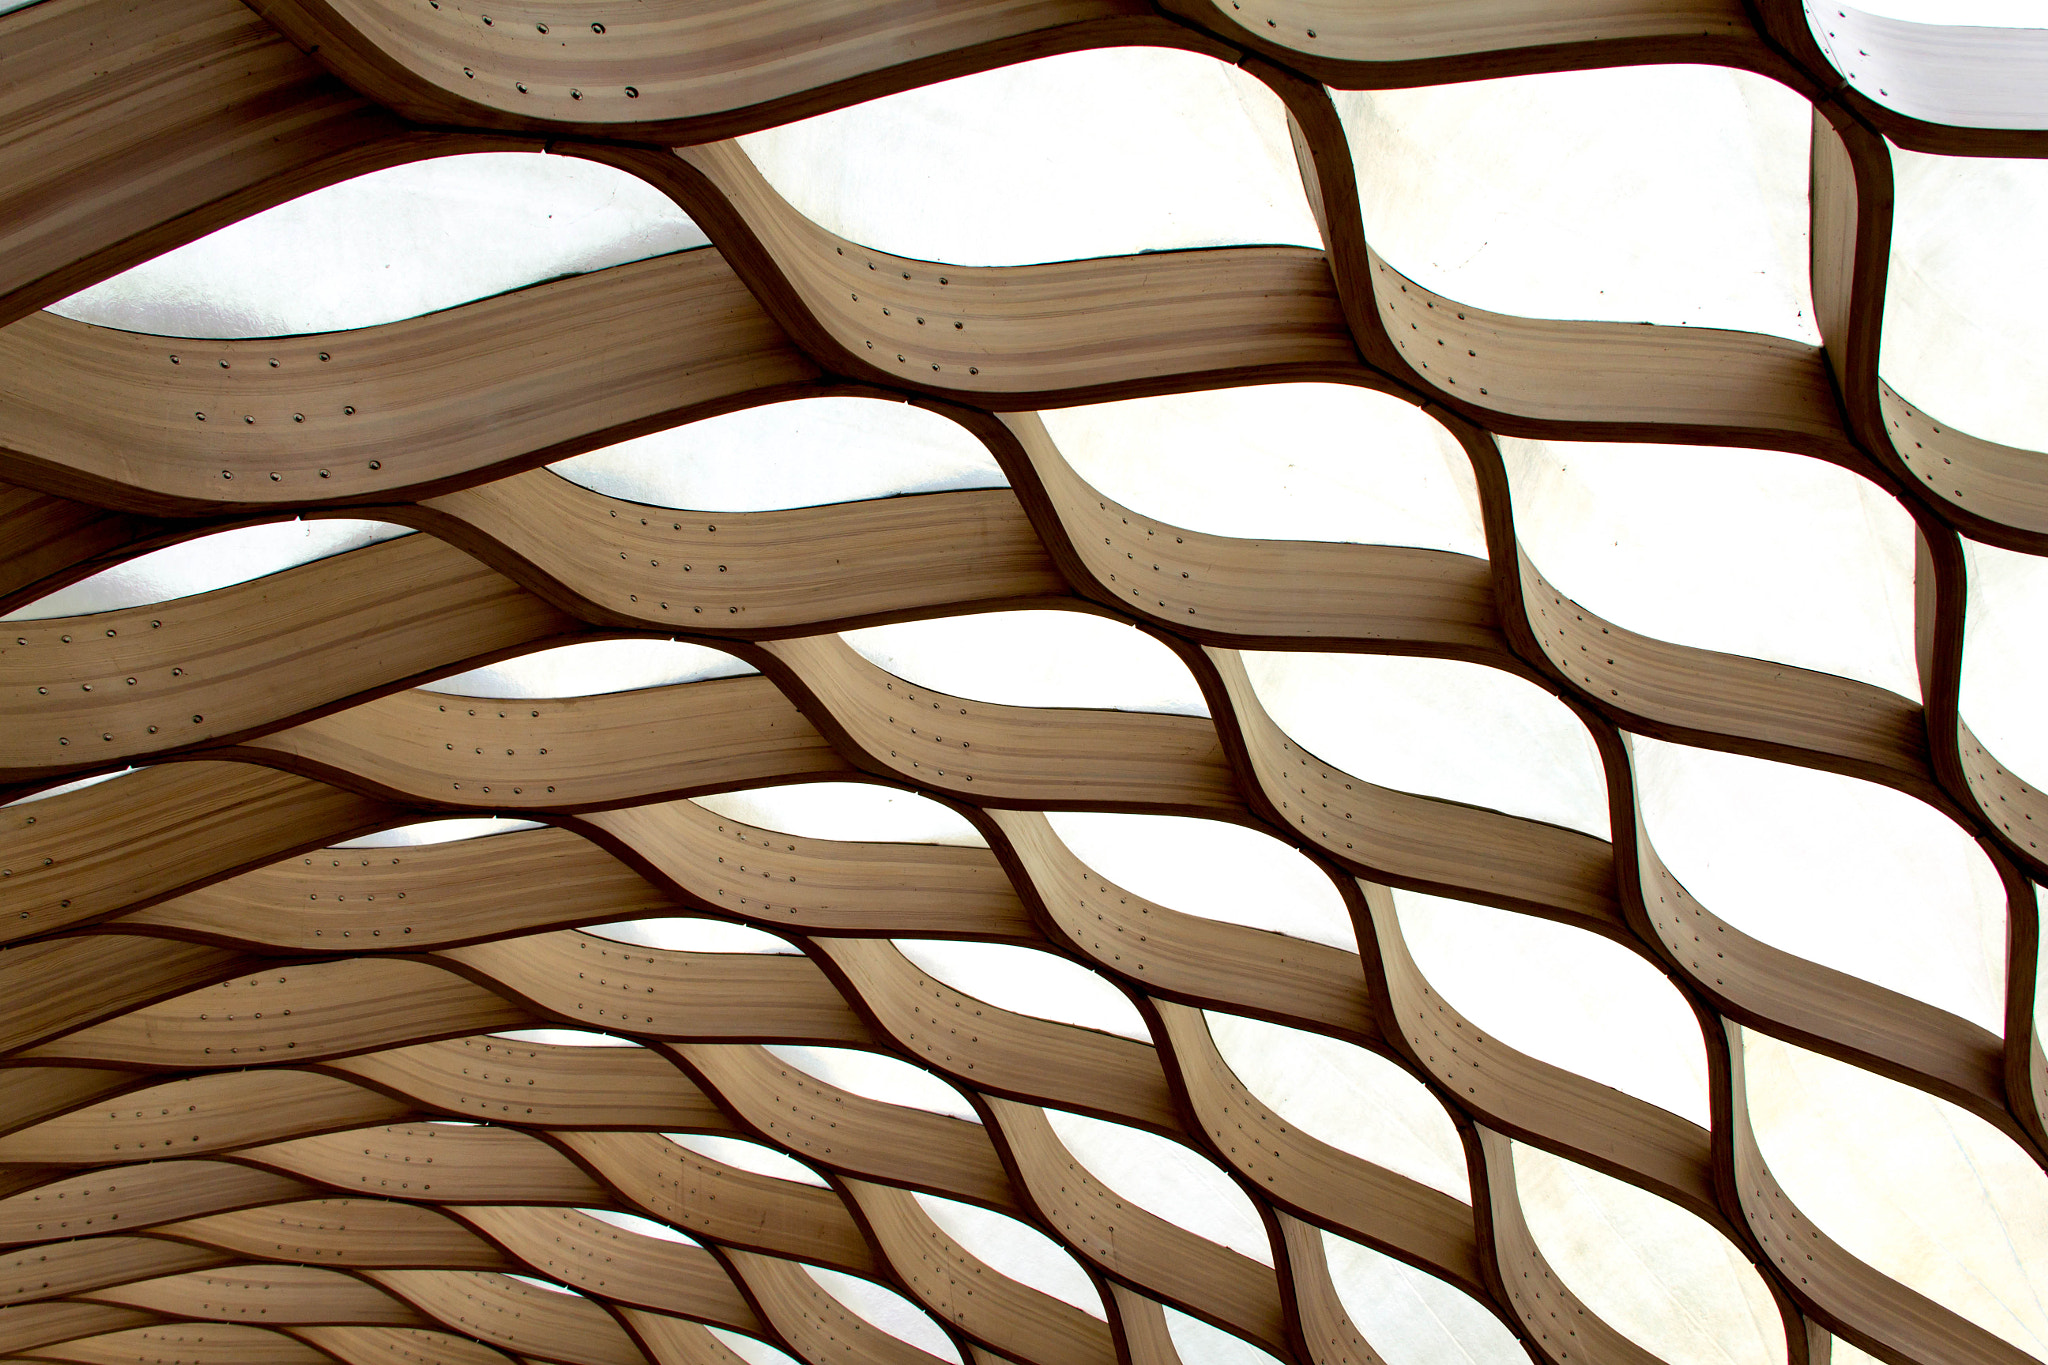 Photograph Waves of Wood by Patrick Dineen on 500px